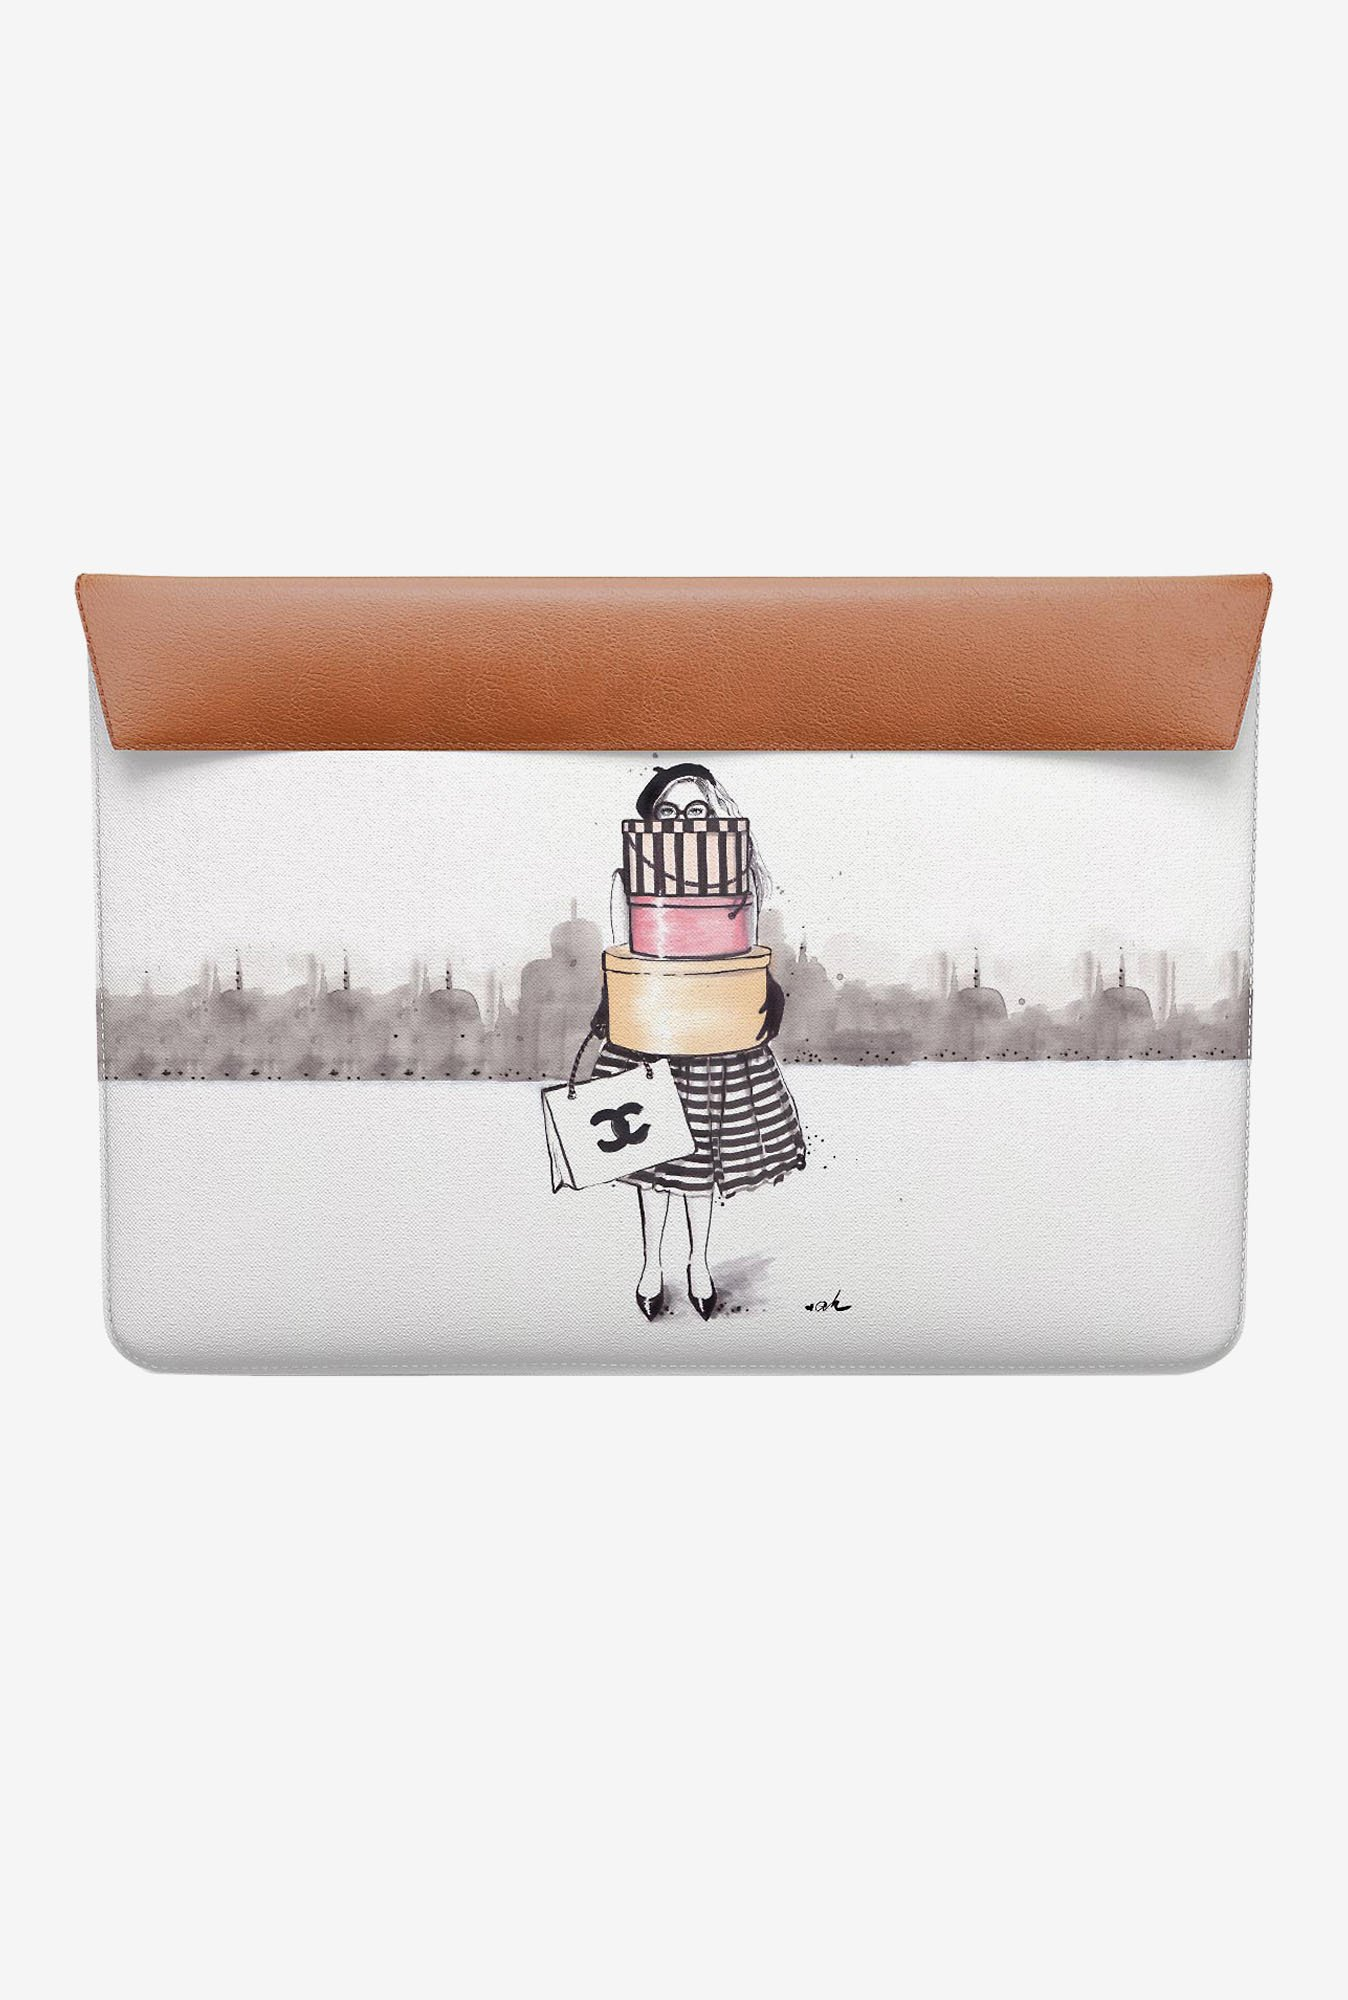 DailyObjects Shopping Junkie MacBook Air 13 Envelope Sleeve